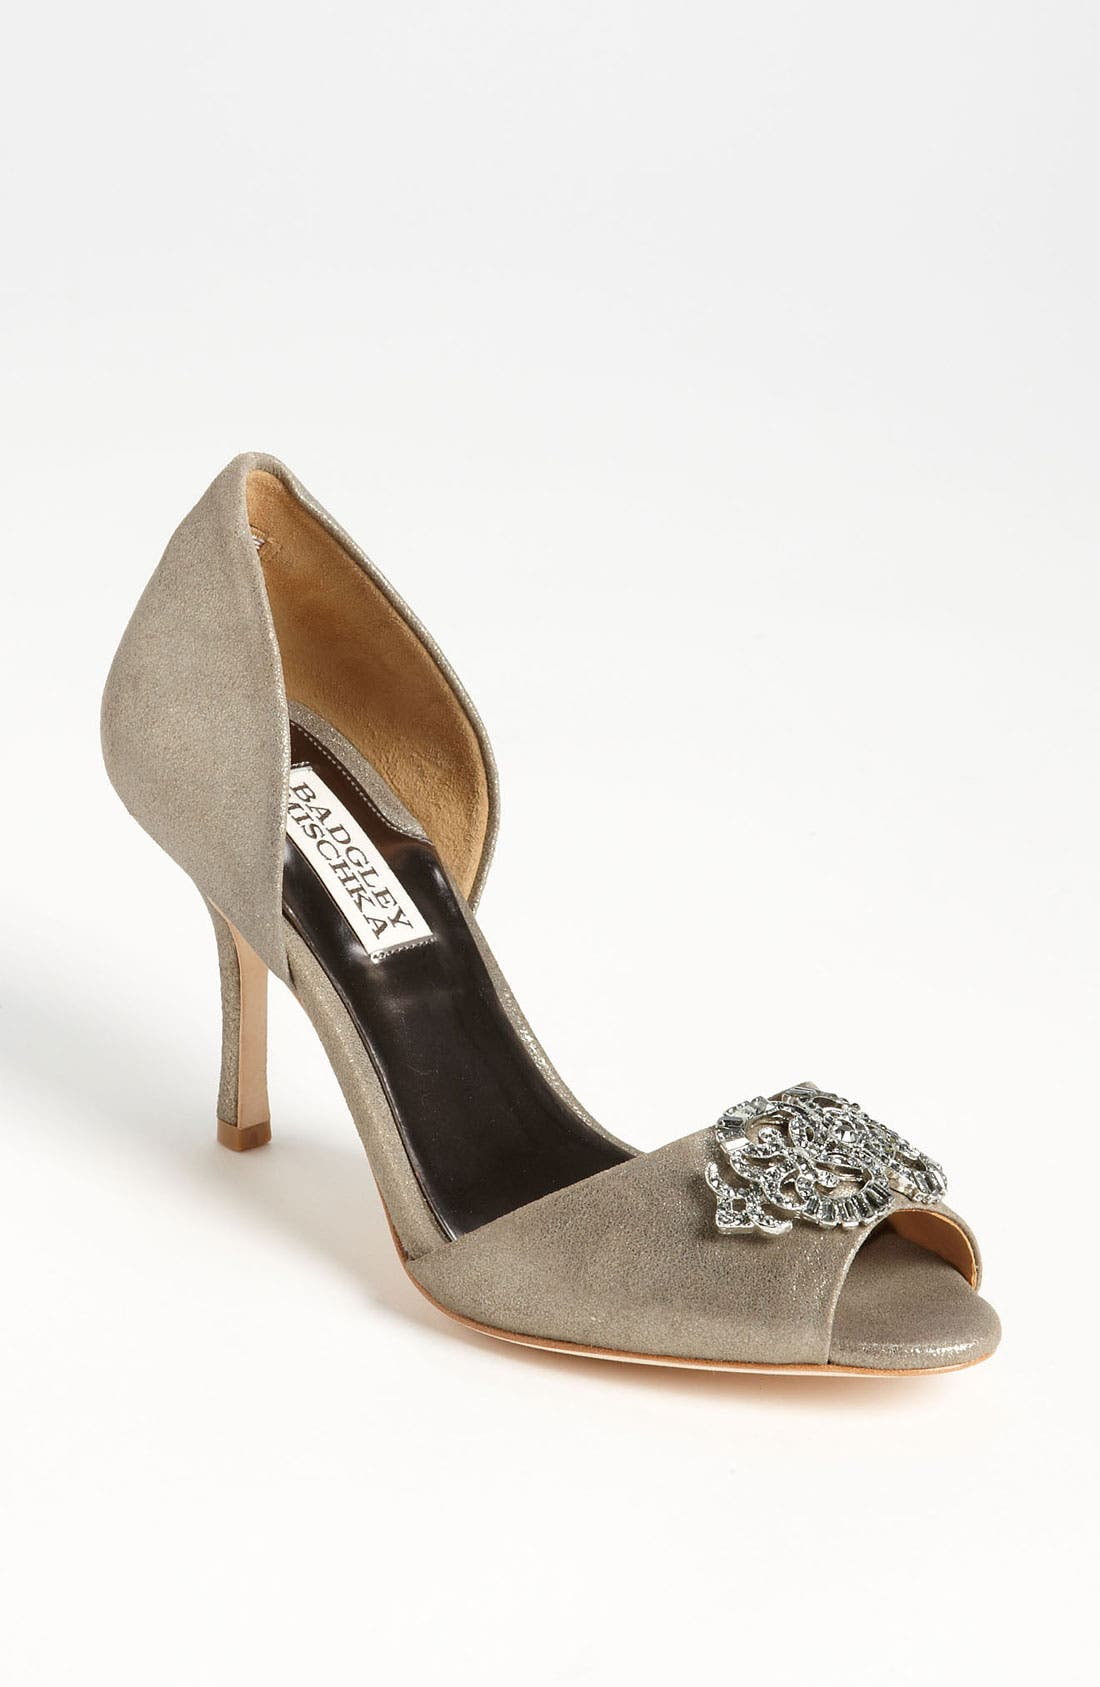 Main Image - Badgley Mischka 'Salsa' Pump